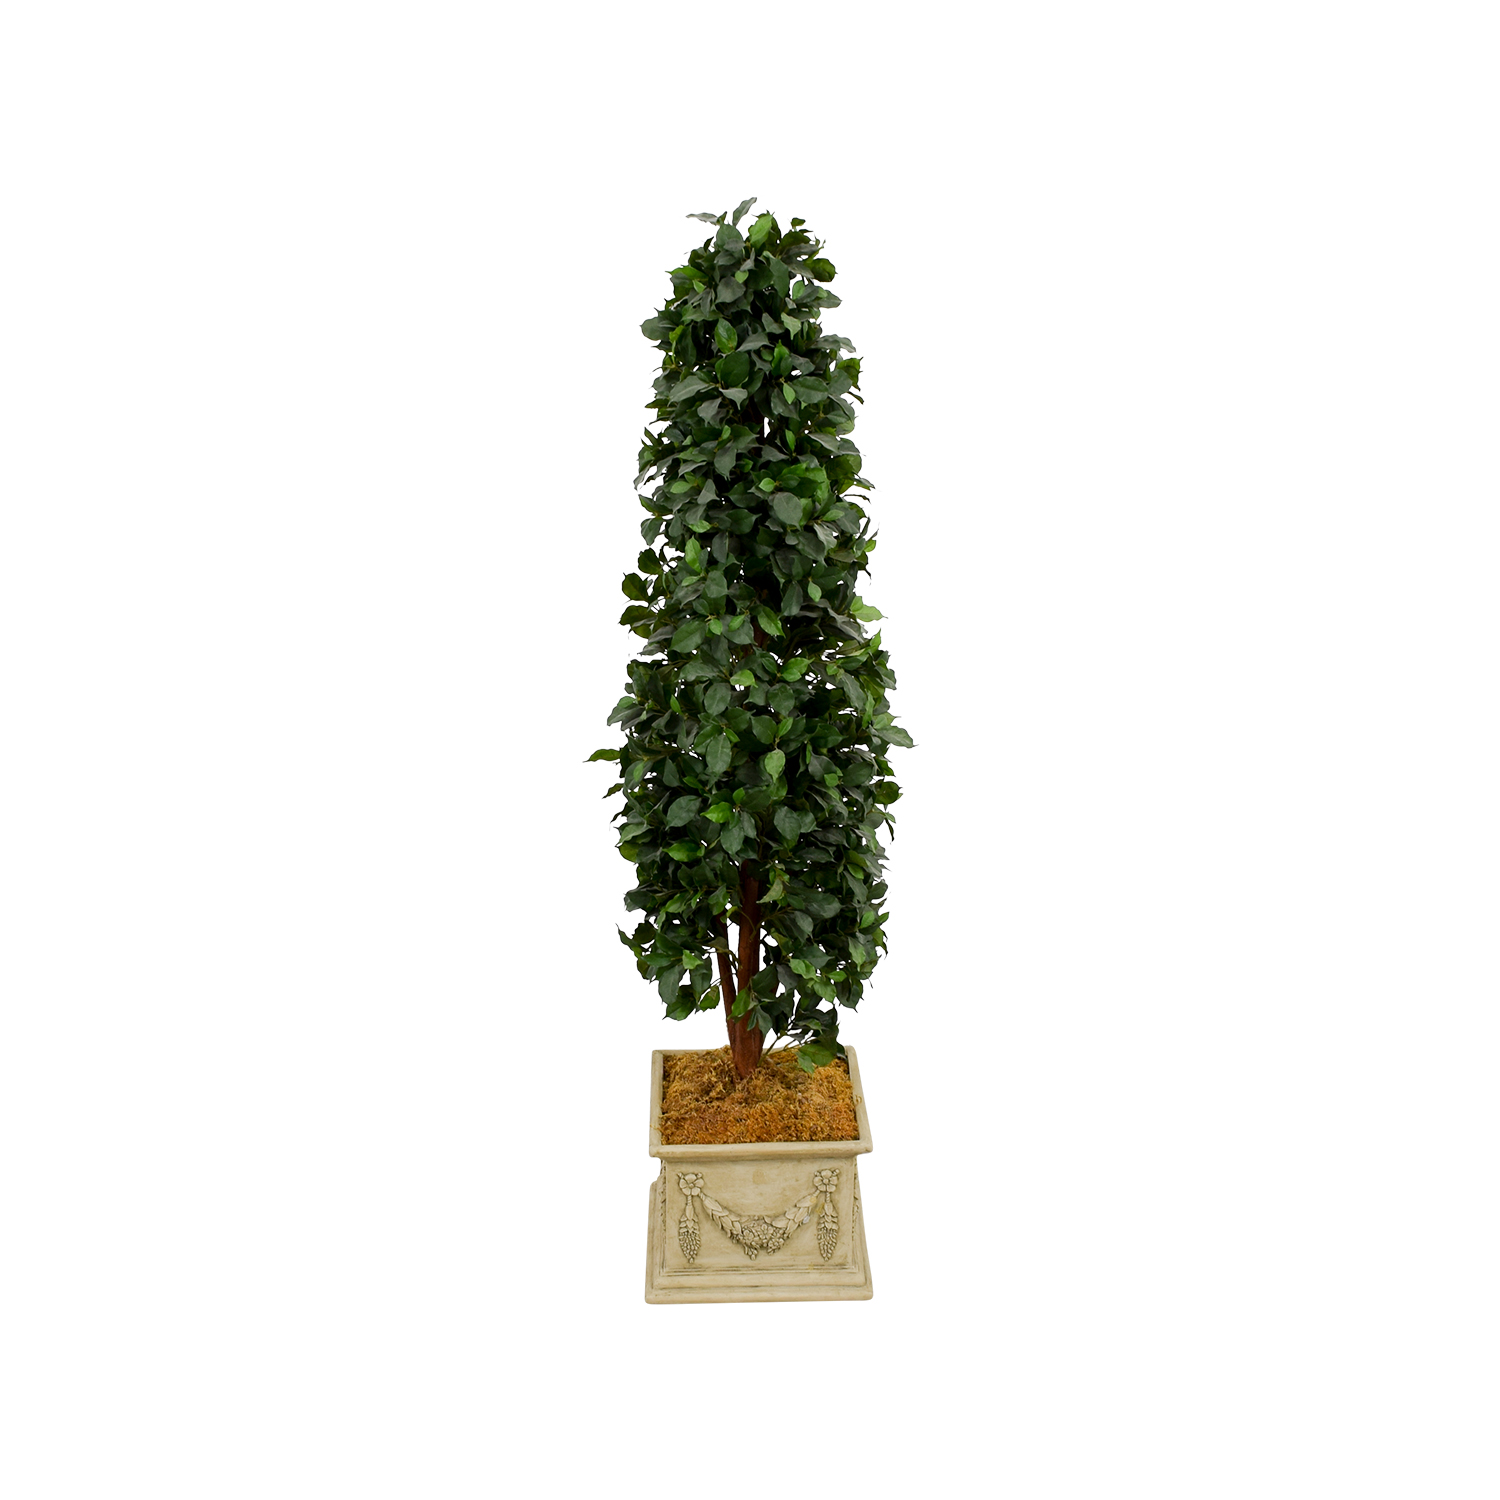 shop Ballard Designs Decorative Green Ivy in Urn Ballard Designs